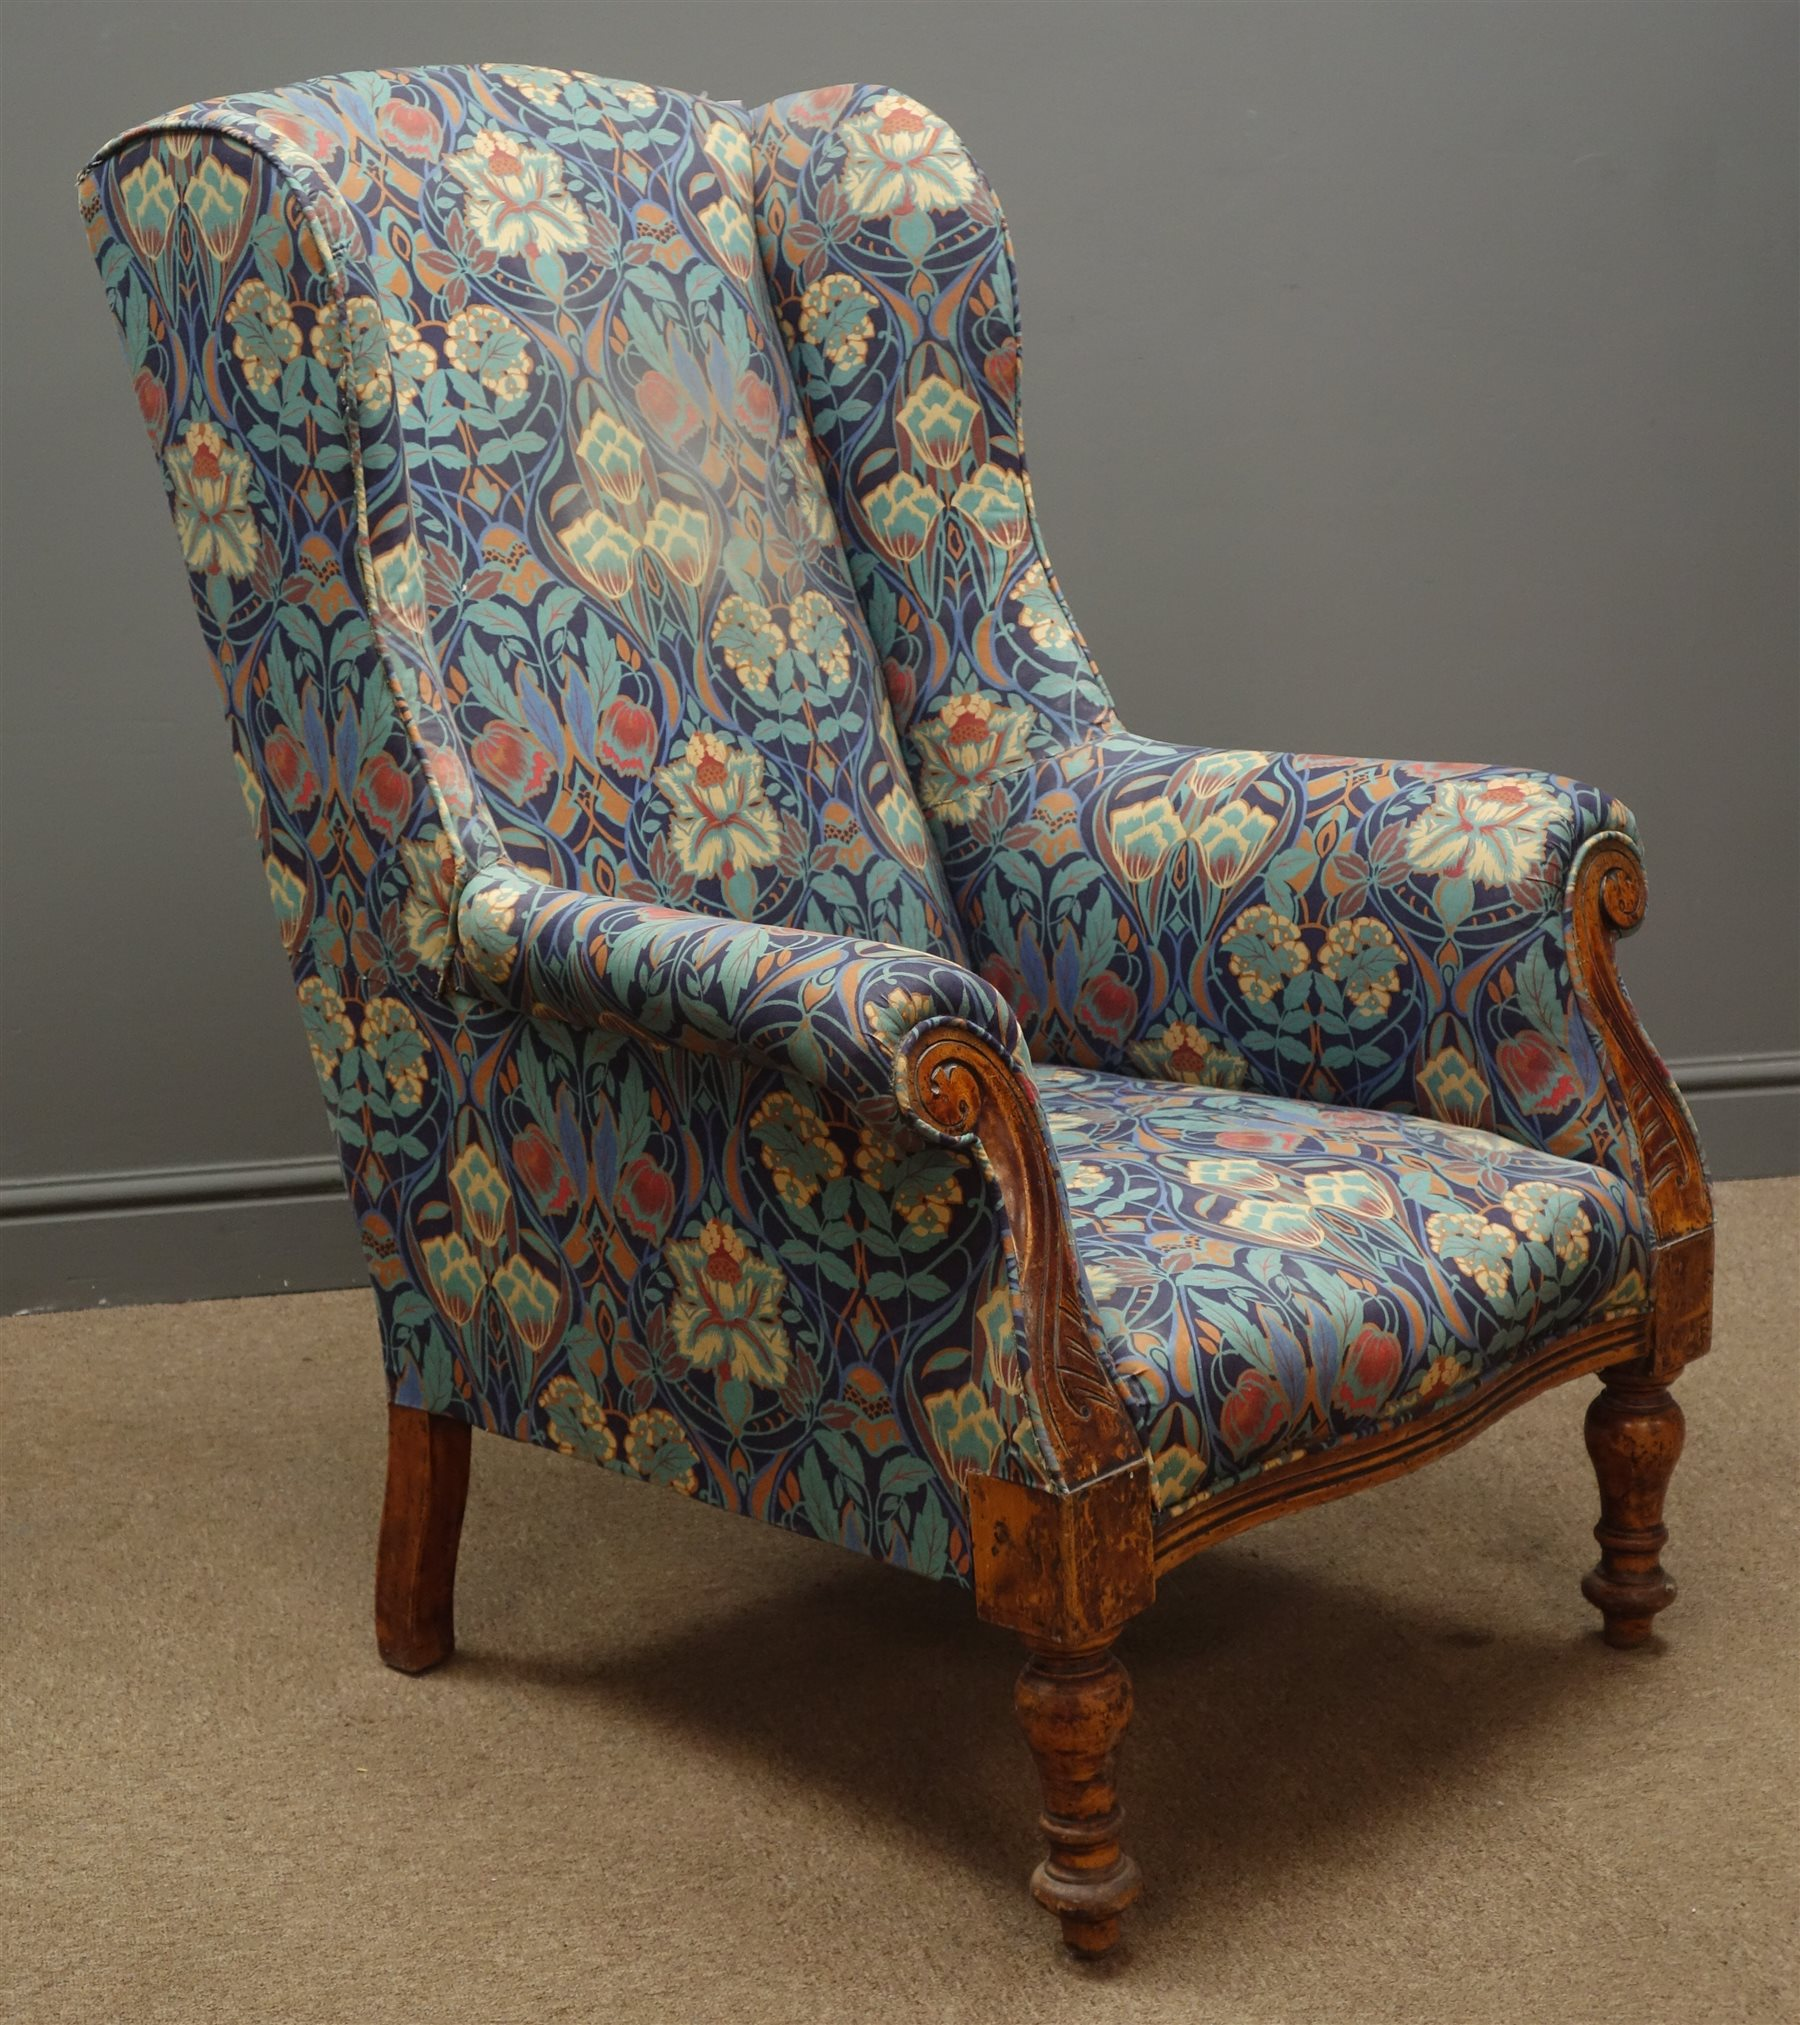 Victorian Wingback Armchair Upholstered In Floral Pattern Fabric Scrolled Arms And Turned Supports Antiques Interiors